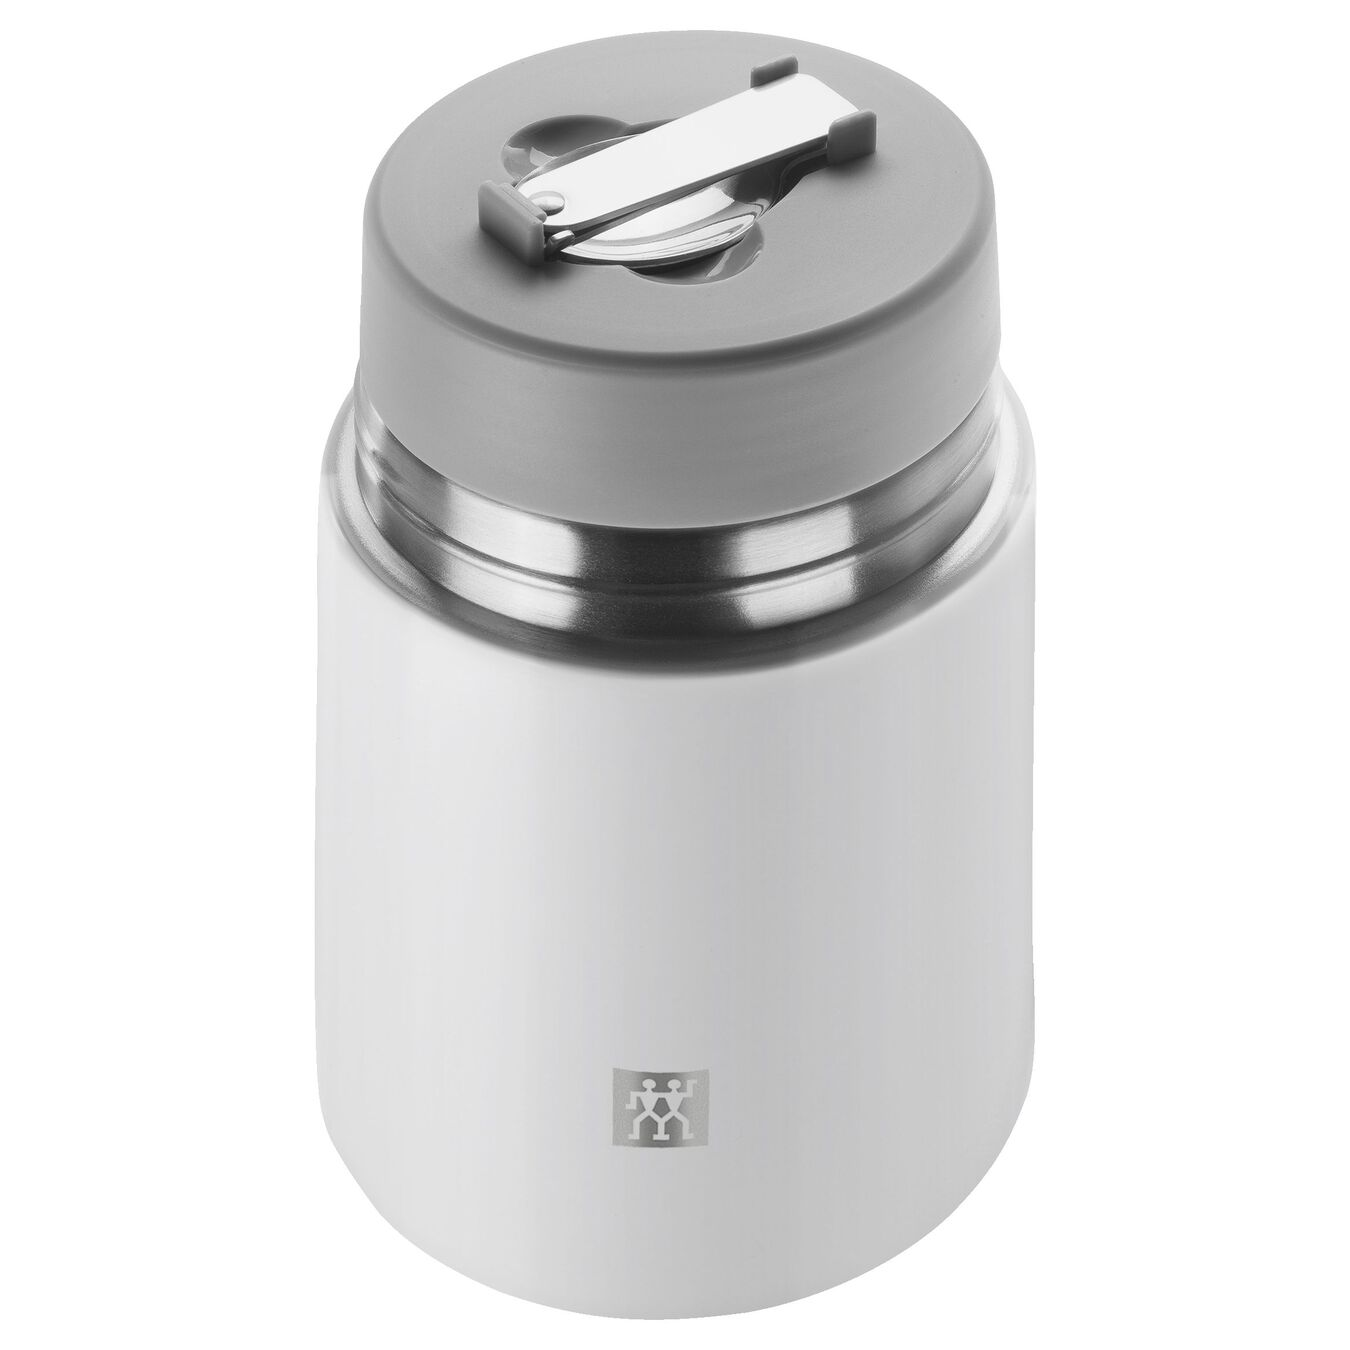 Contenant alimentaire isotherme, White | Stainless steel | 700 ml,,large 3